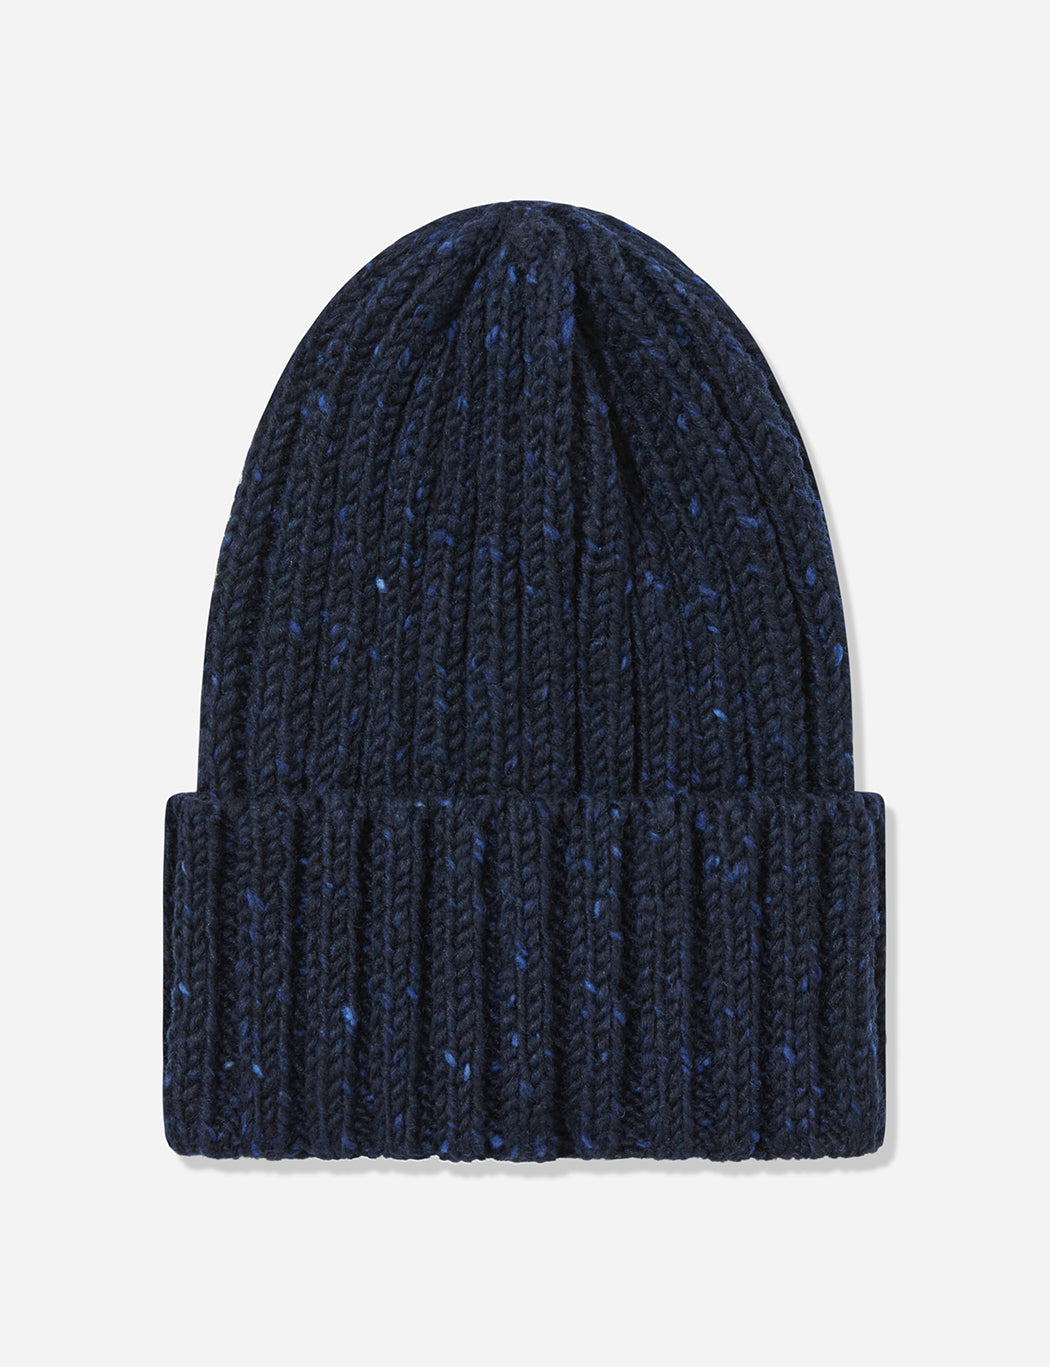 Highland 2000 Donegal Beanie Hat - Navy Blue